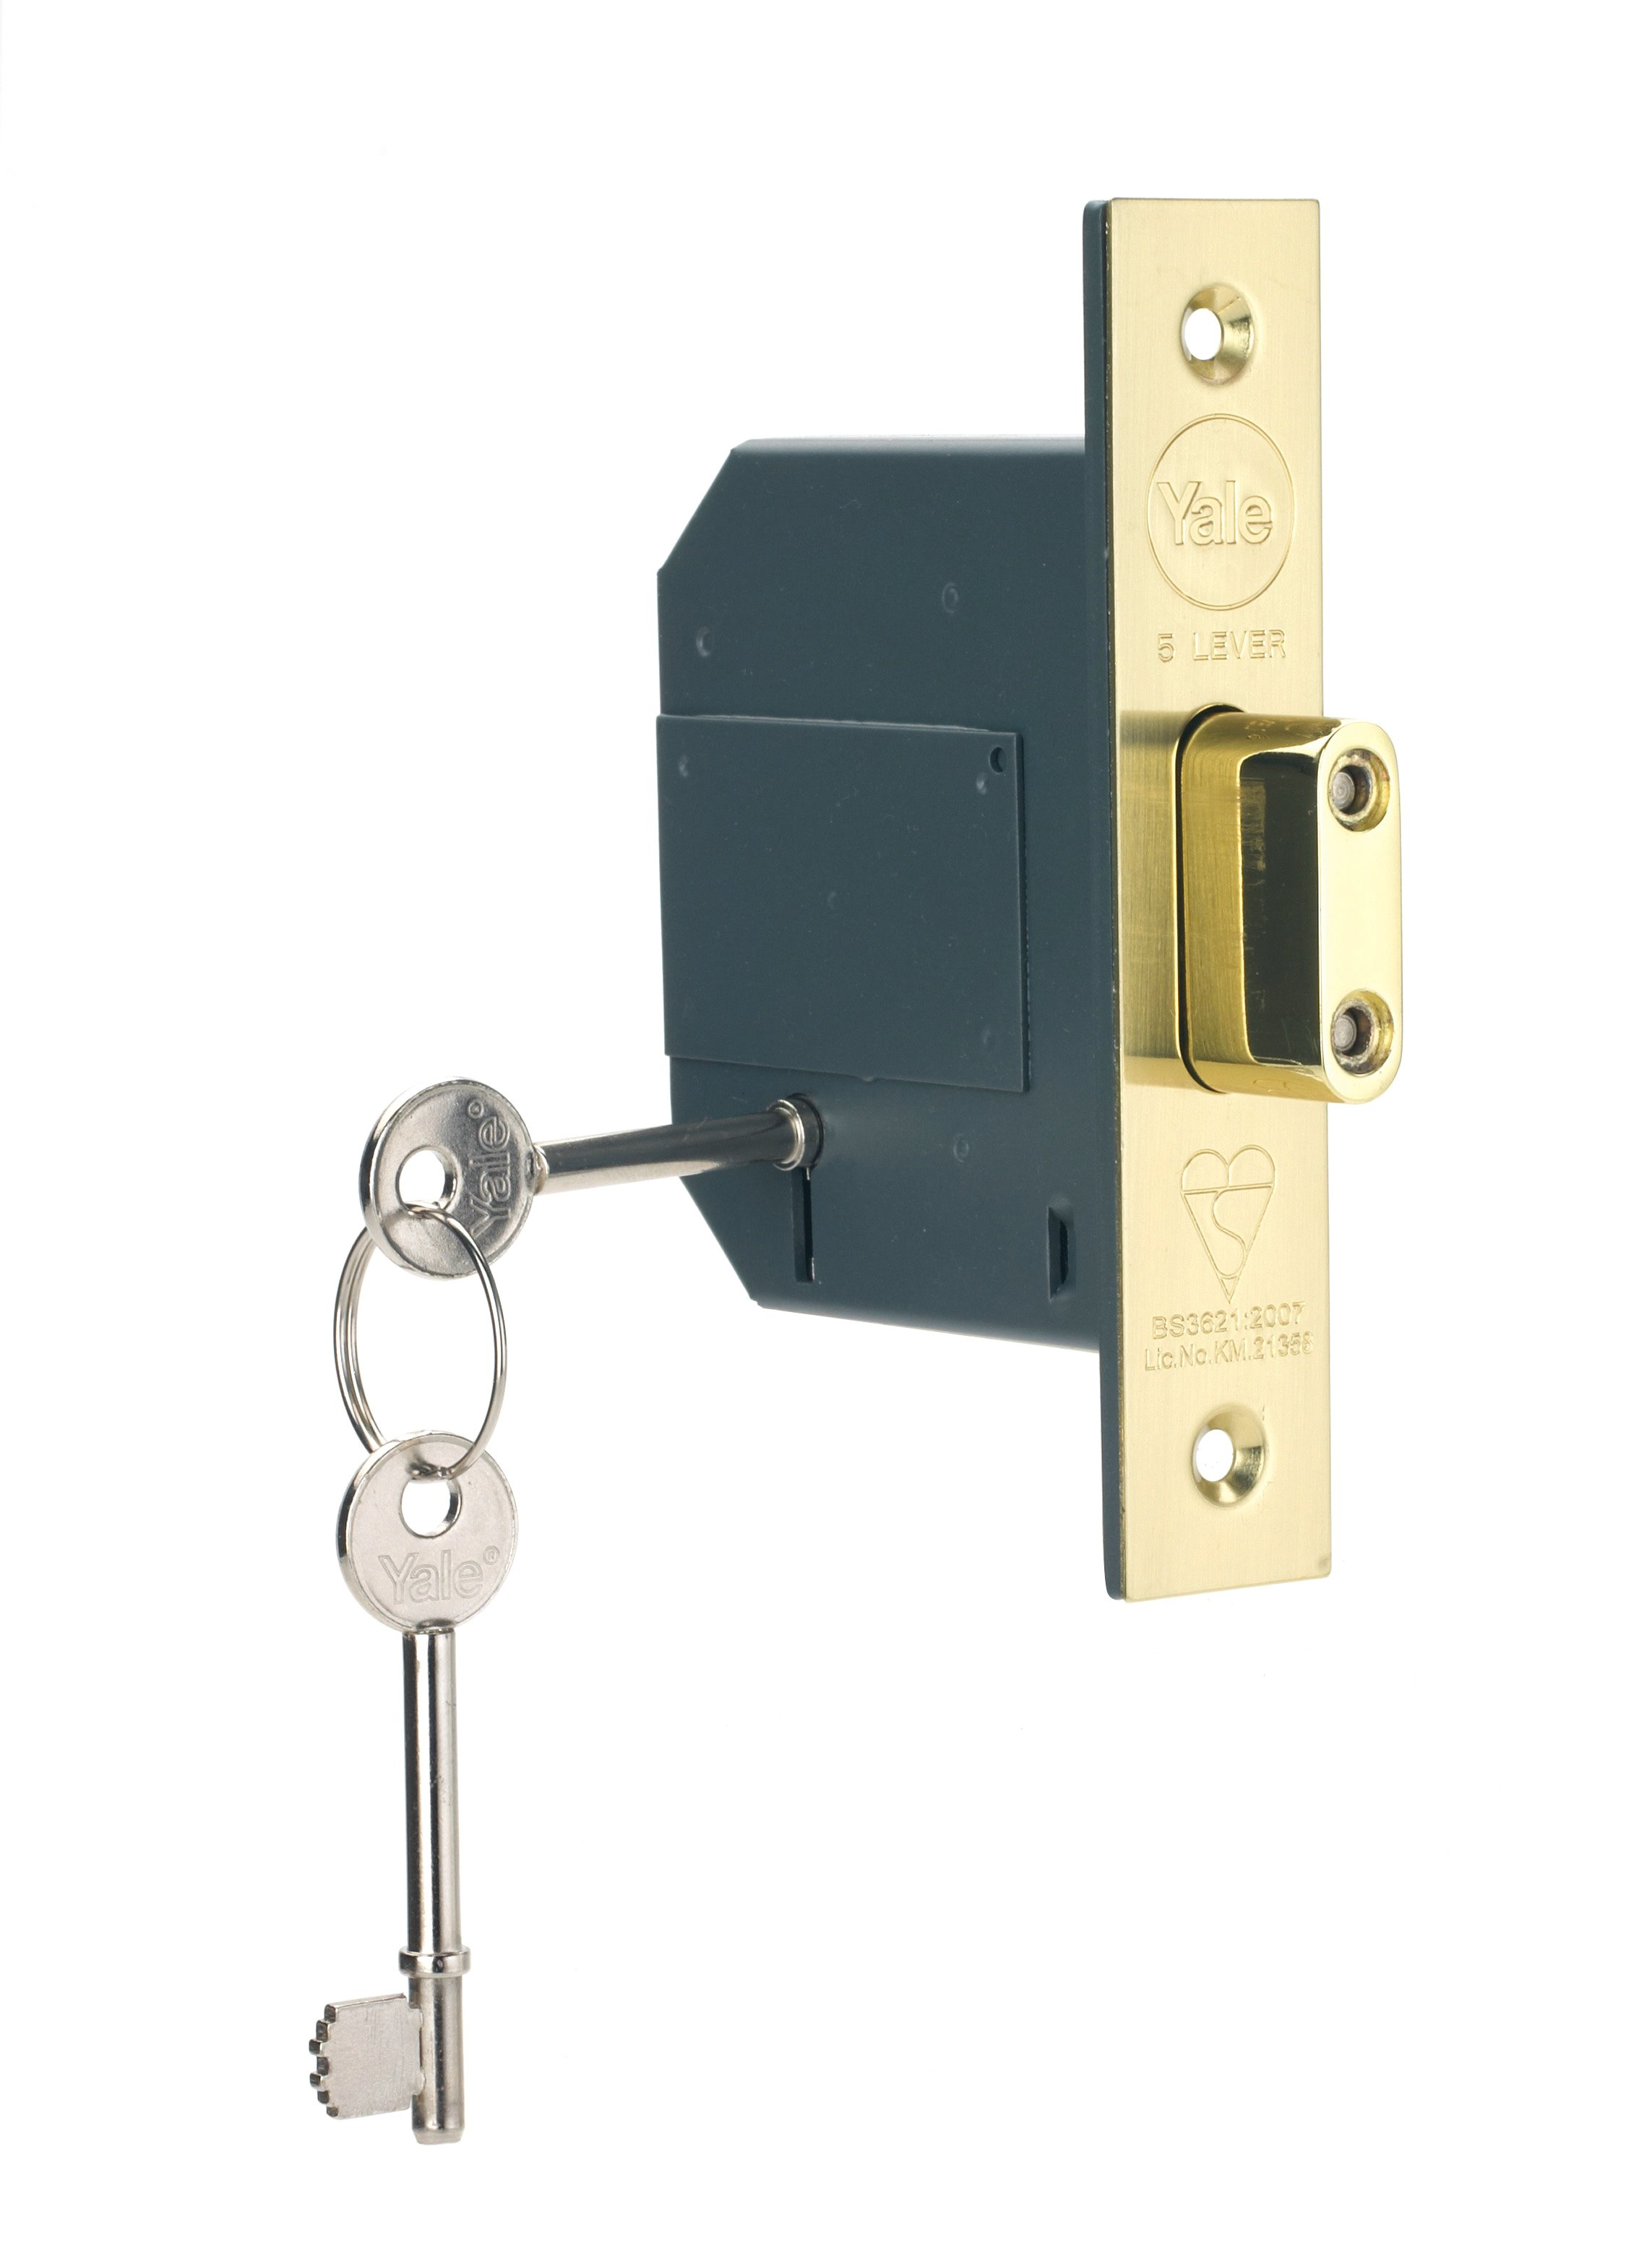 PM562 British Standard BS3621 5 Lever Deadlock